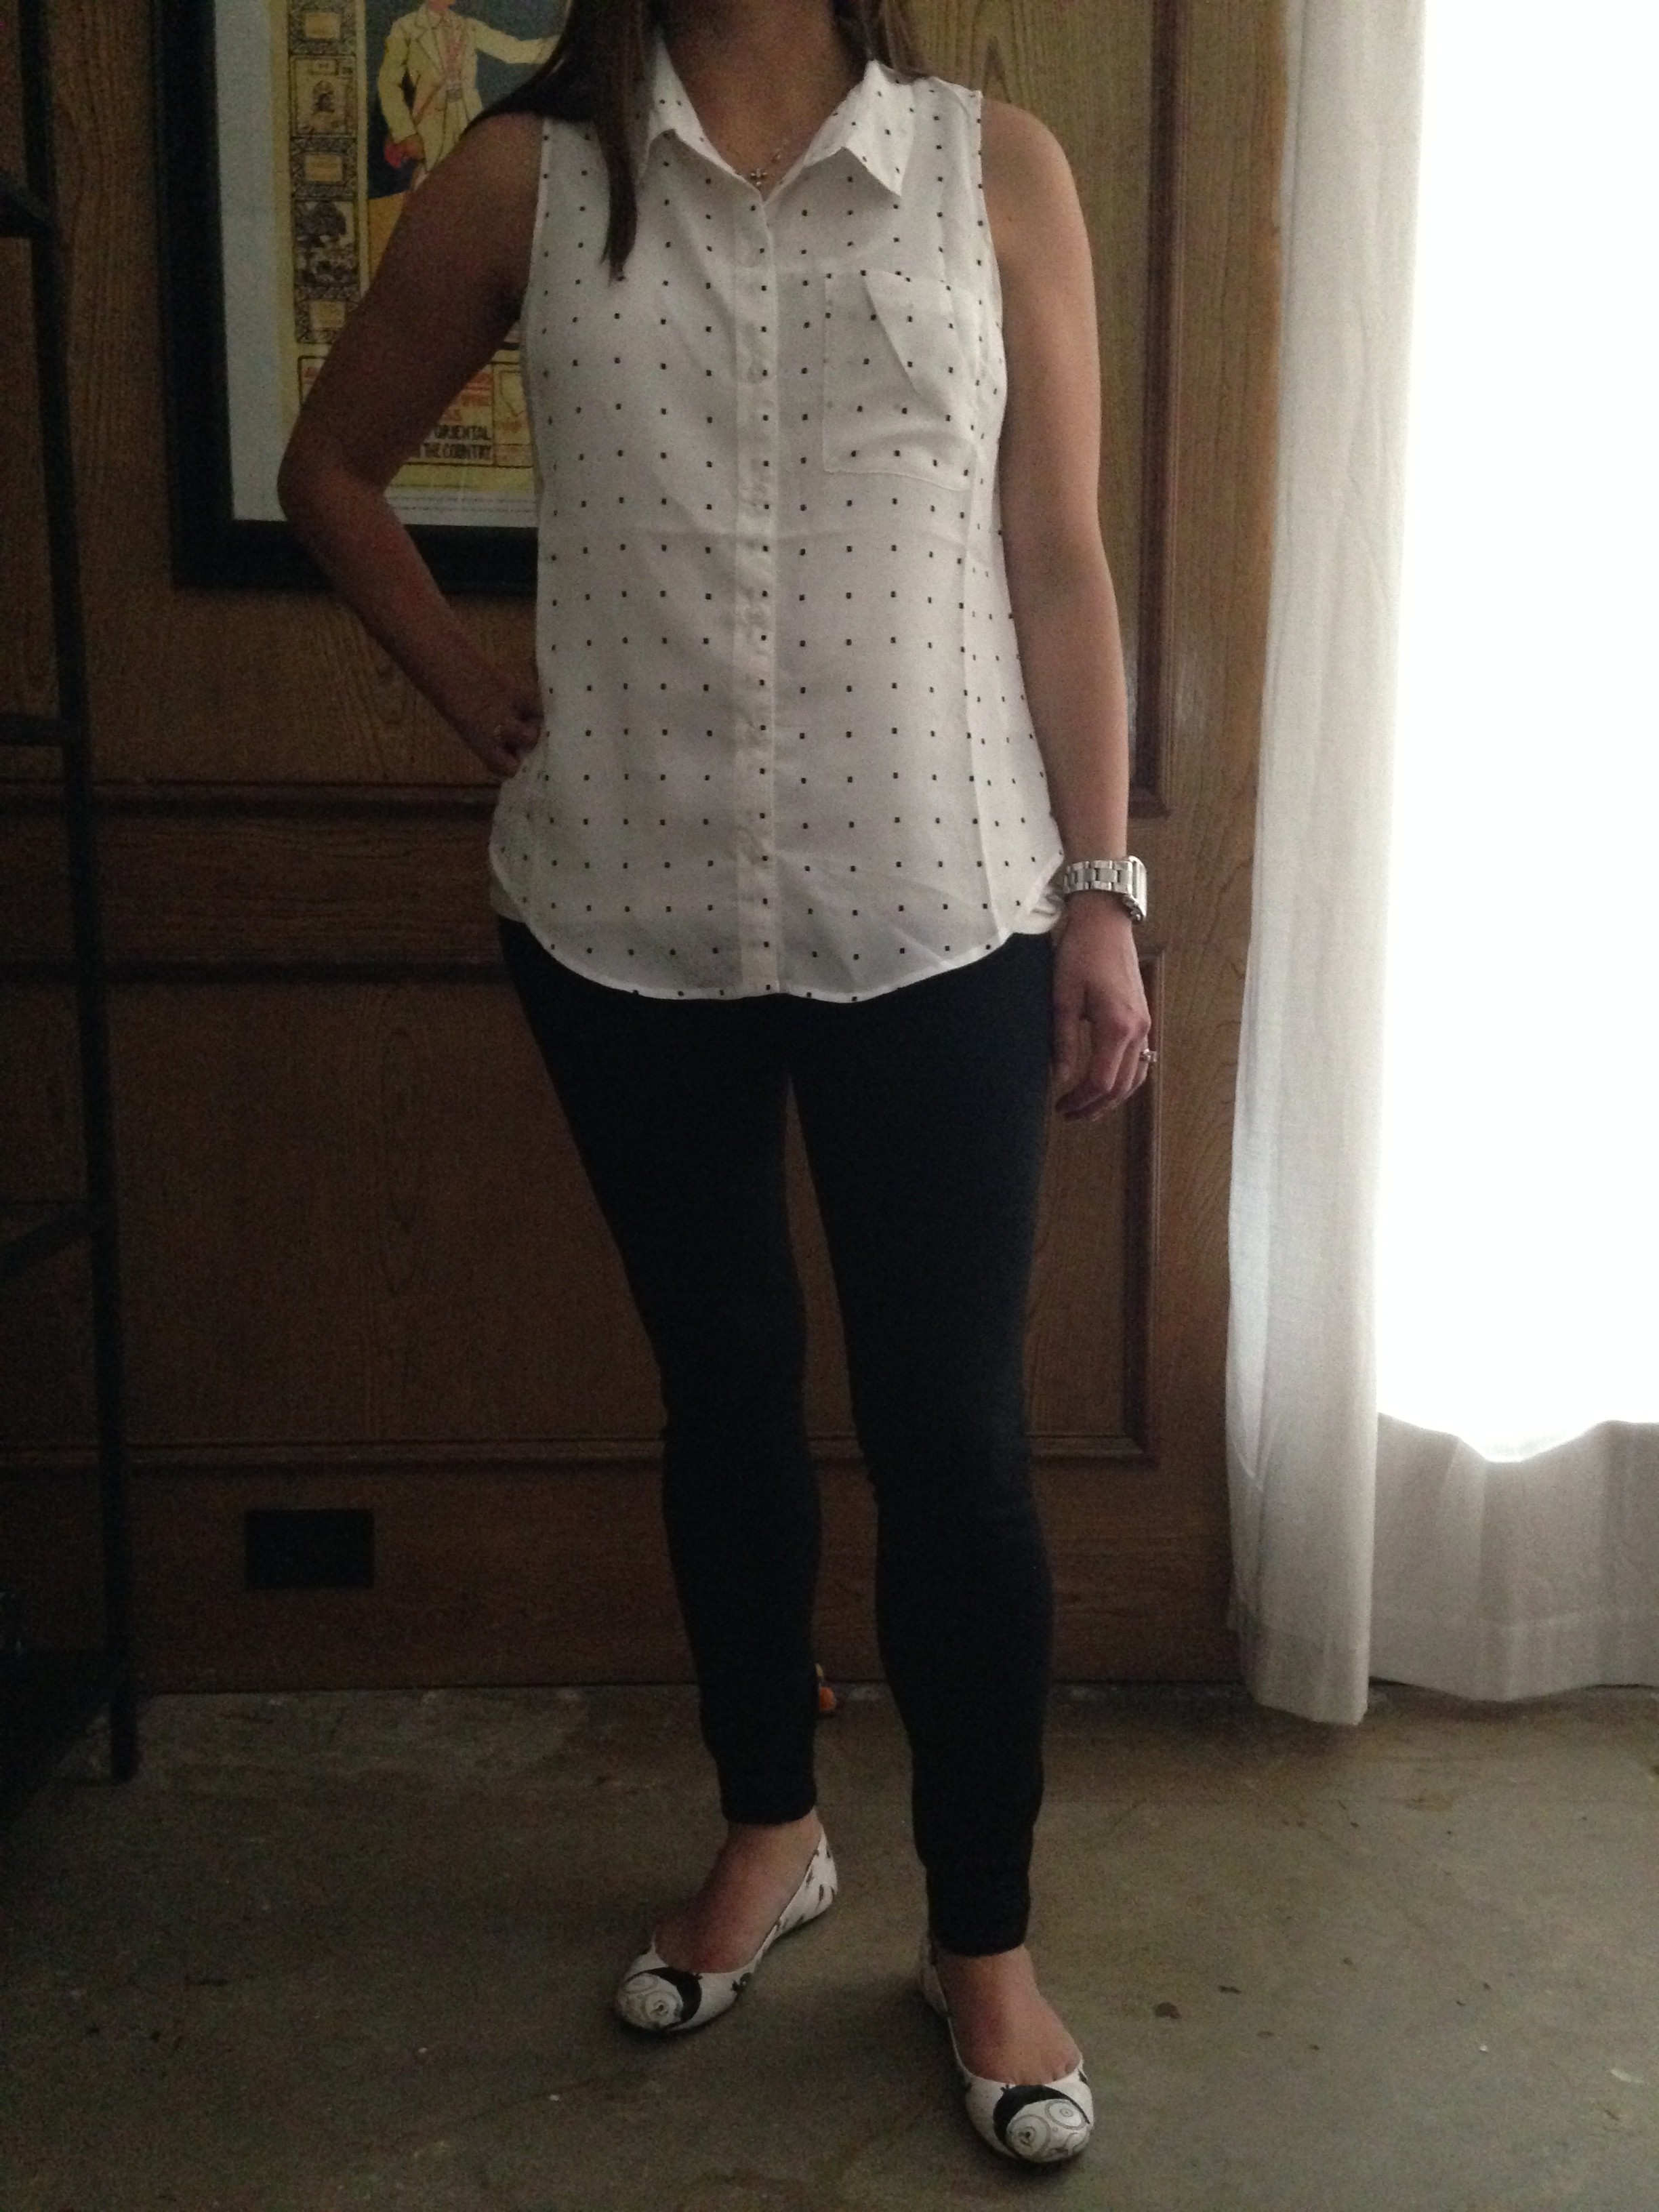 new concept c3961 ce62e ... White sleeveless dotted blouse, black skinny pants, and white patterned  shoes